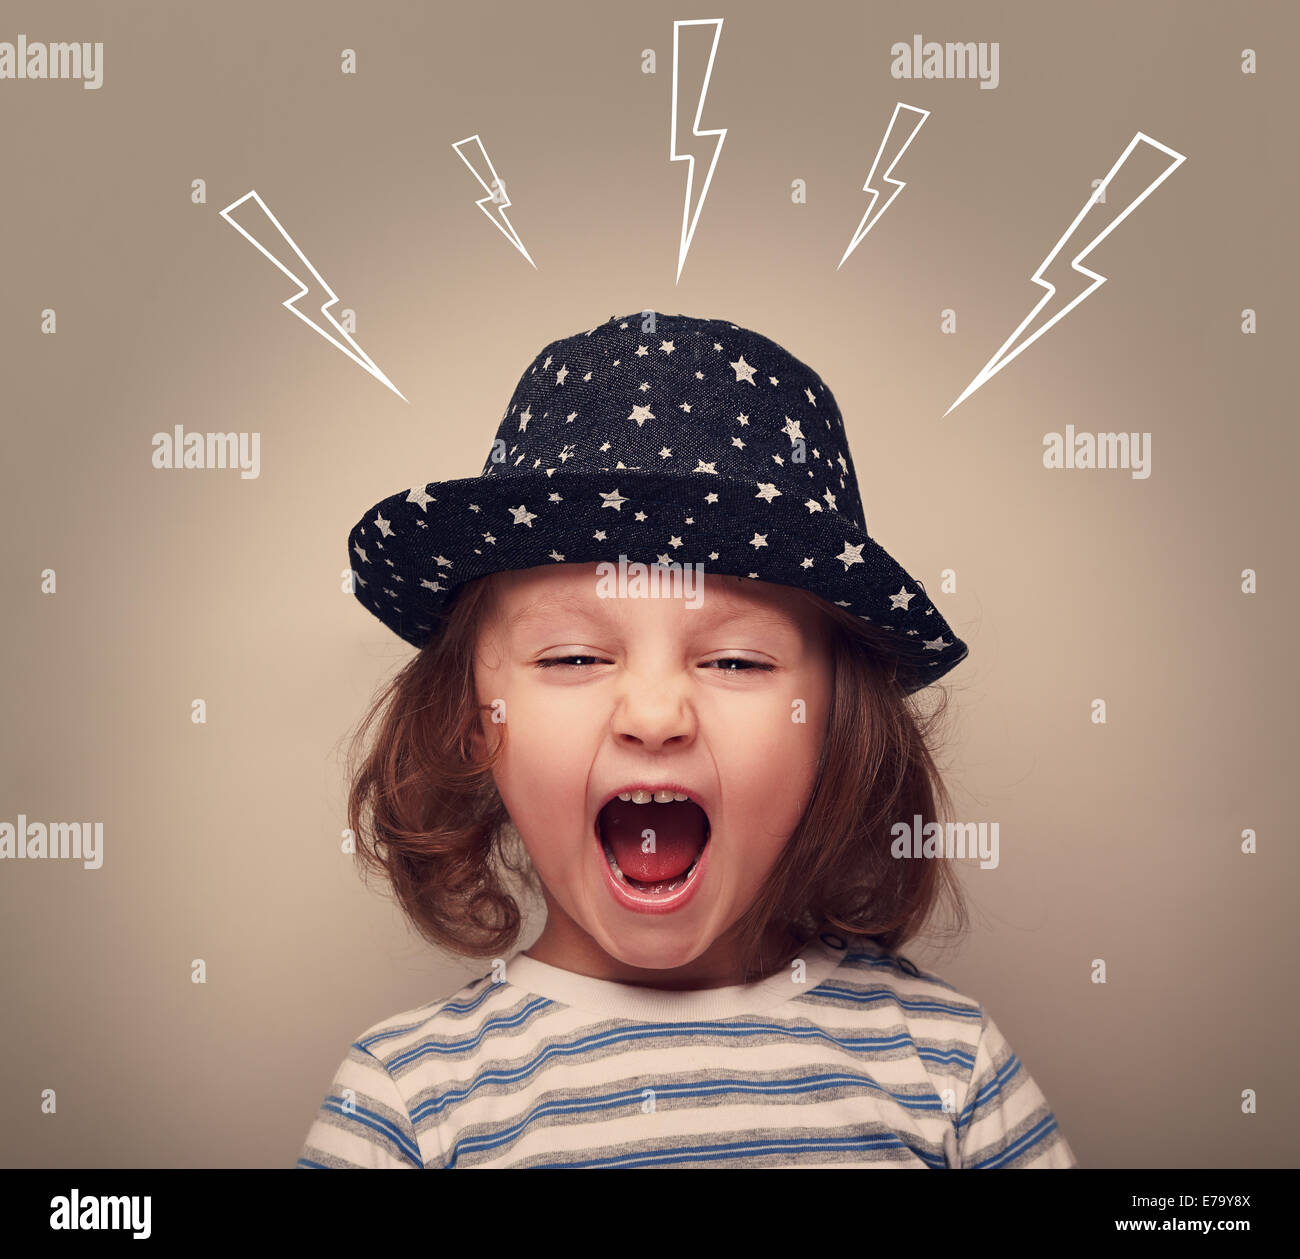 Shouting angry small kid with open mouth and lightnings above - Stock Image